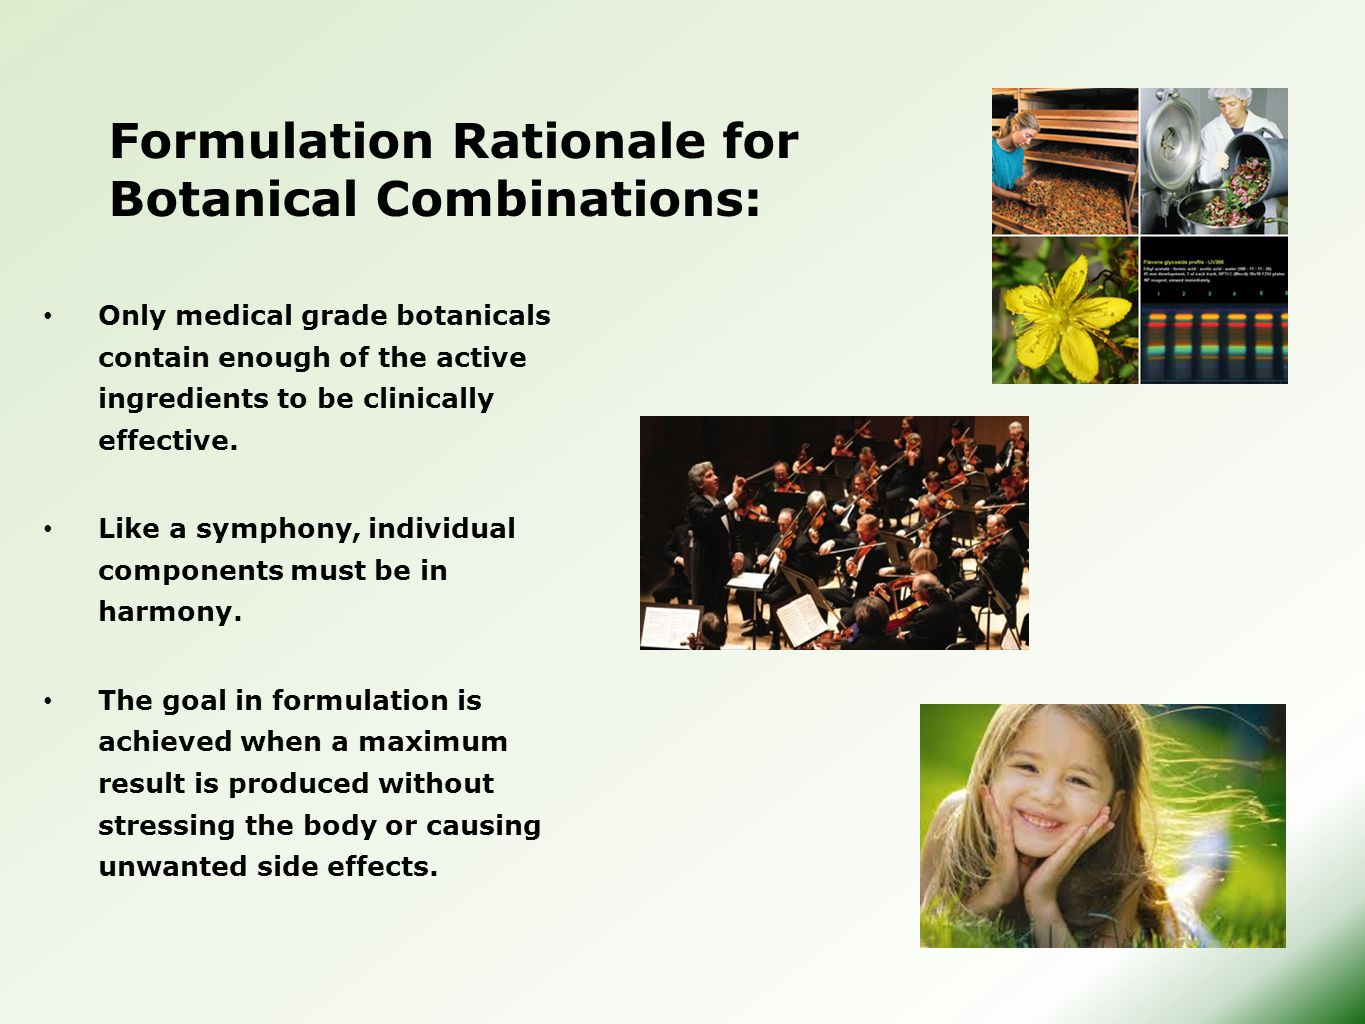 Formulation Rationale for Botanical Combinations: Only medical grade botanicals contain enough of the active ingredients to be clinically effective. L